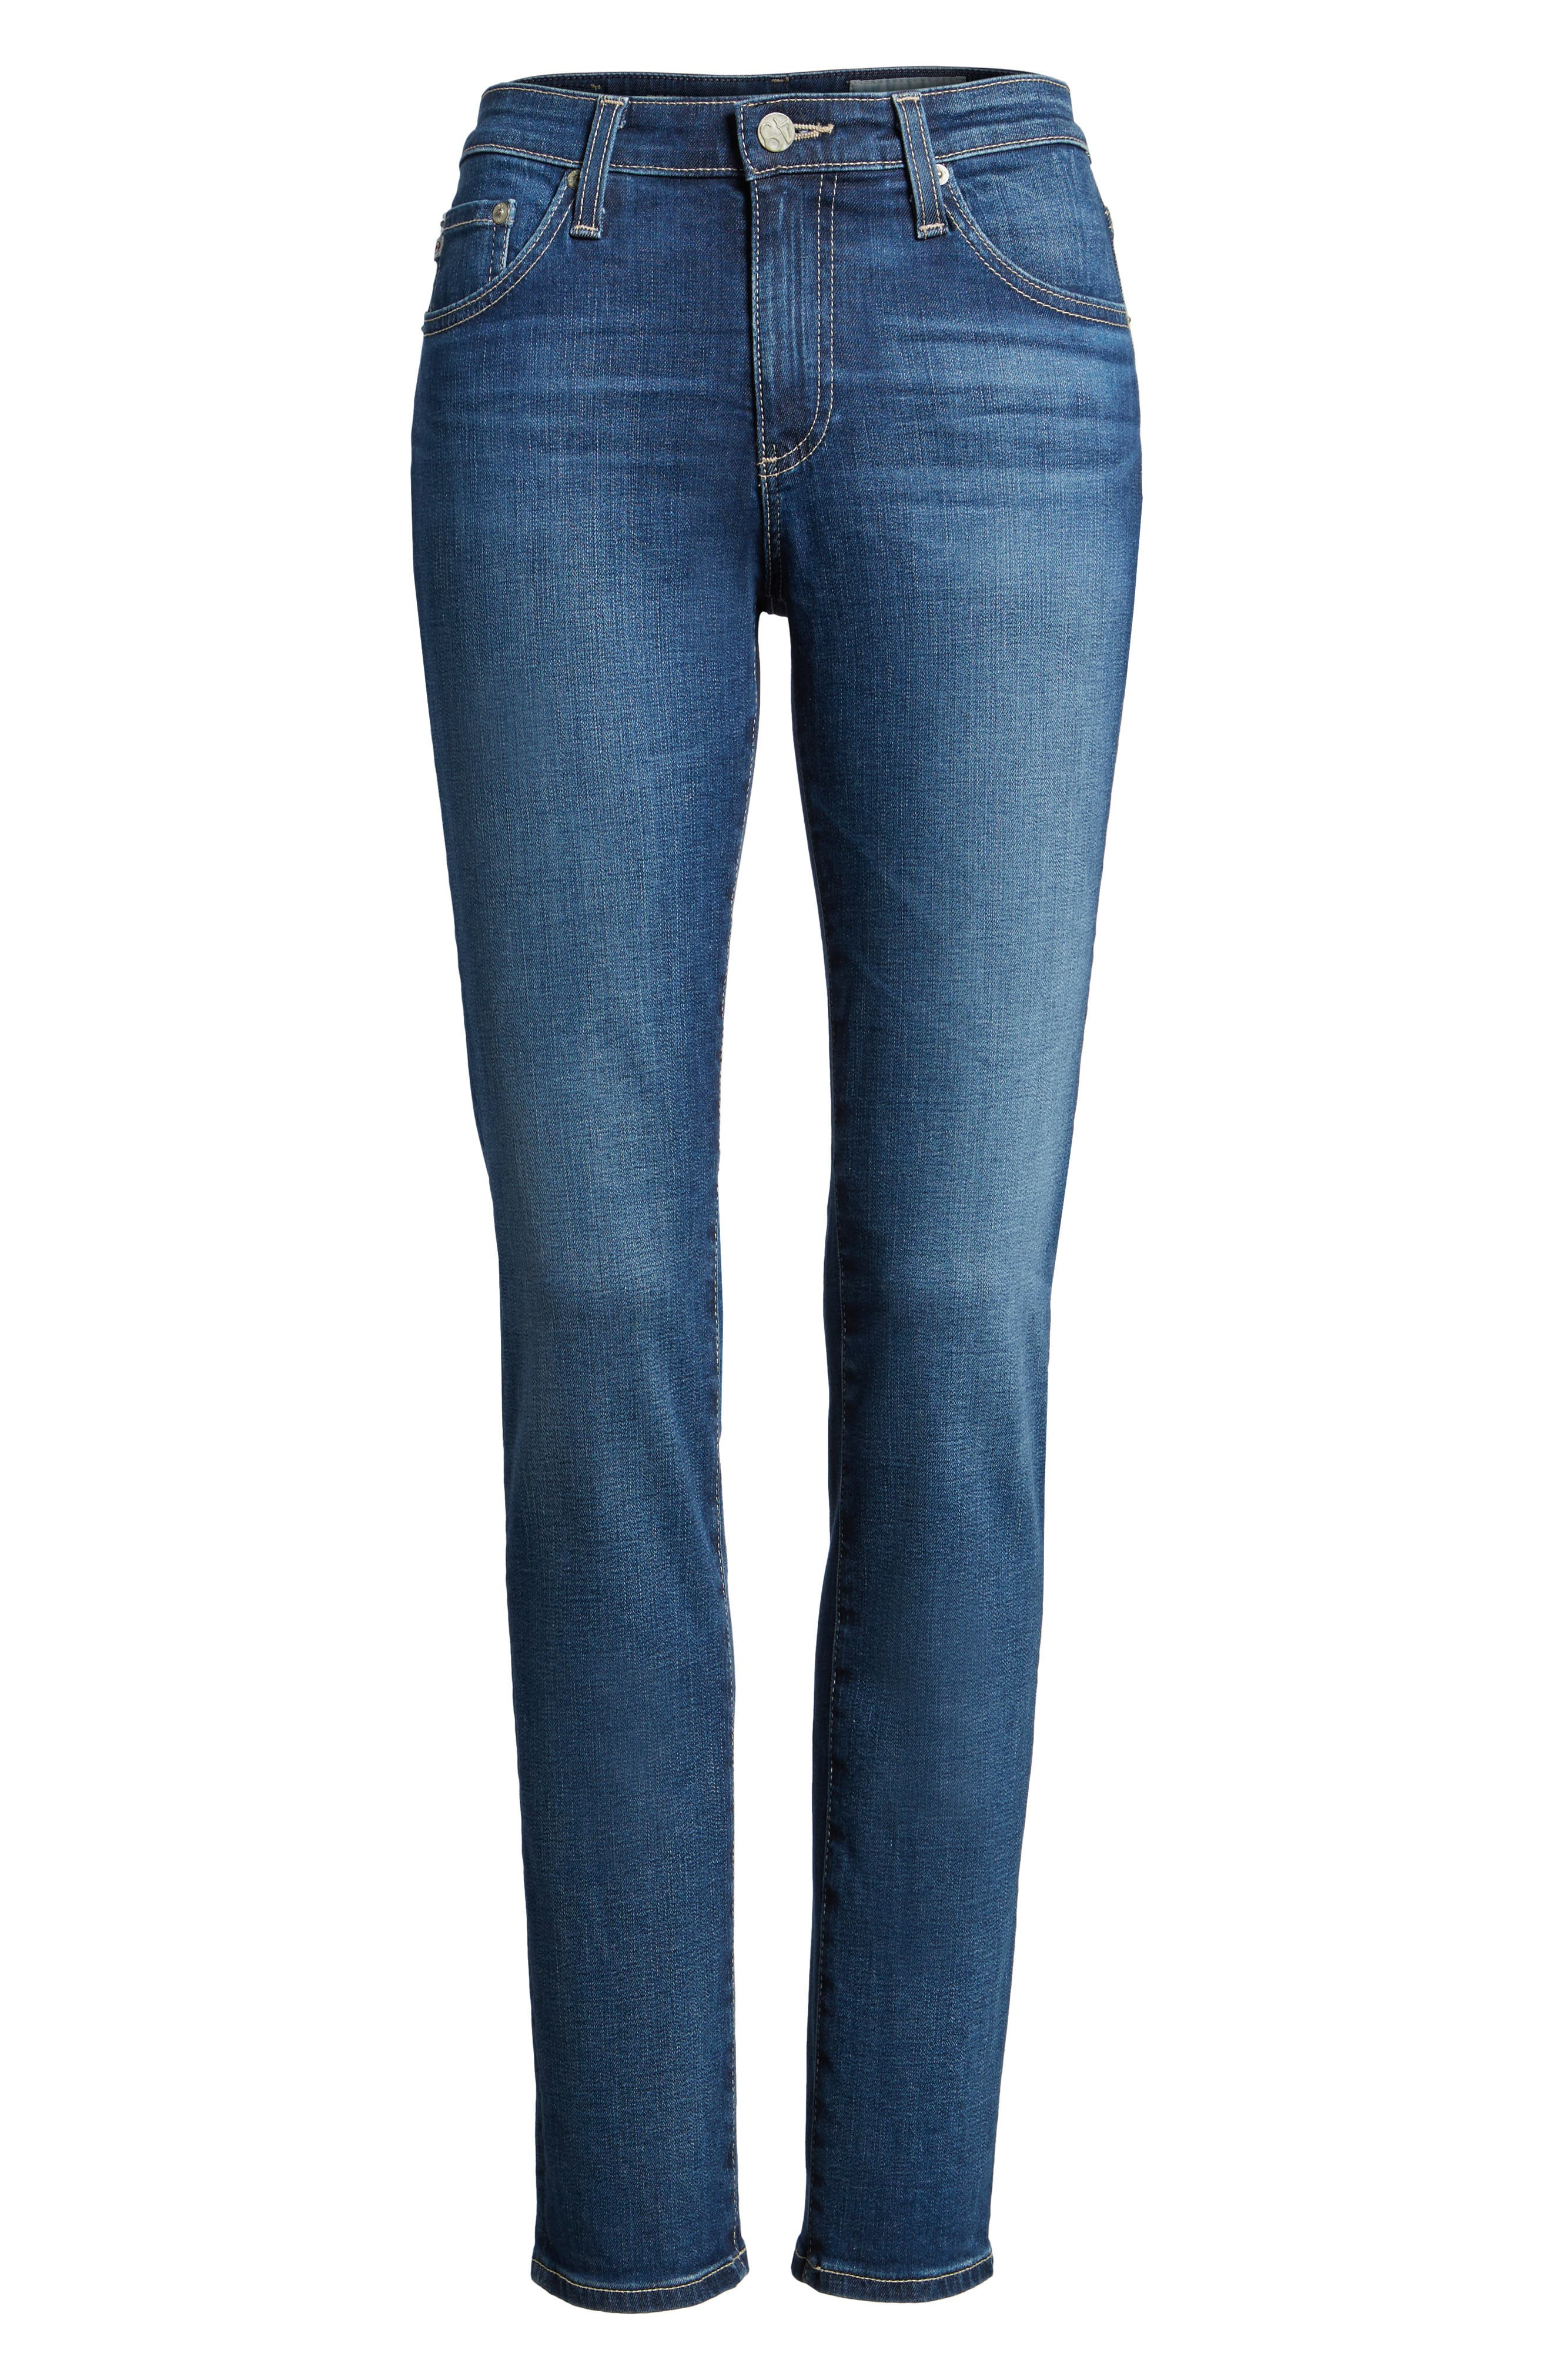 'Prima' Skinny Jeans,                             Alternate thumbnail 37, color,